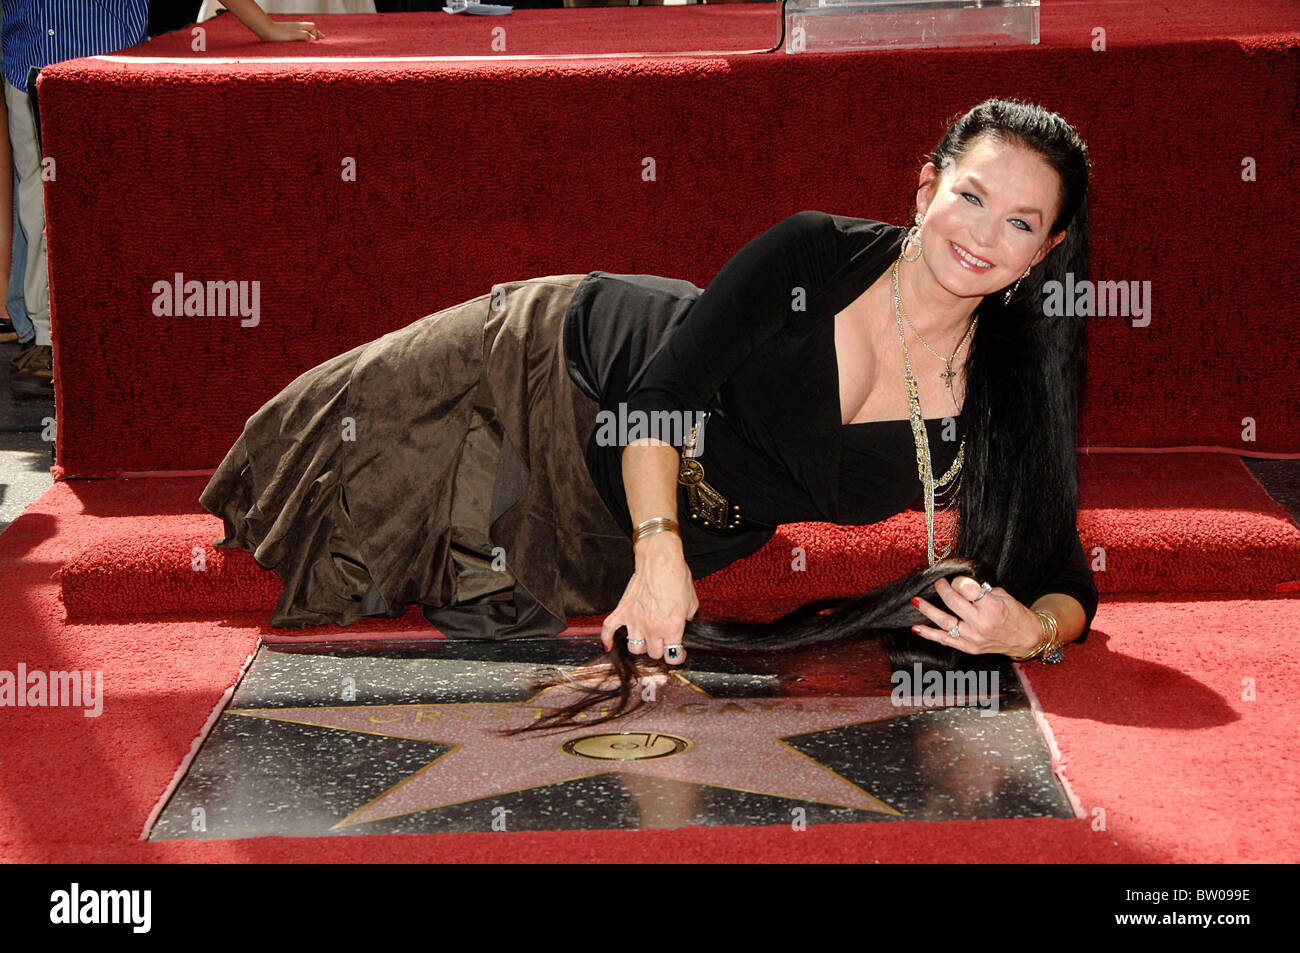 Star on the Hollywood Walk of Fame for Crystal Gayle - Stock Image